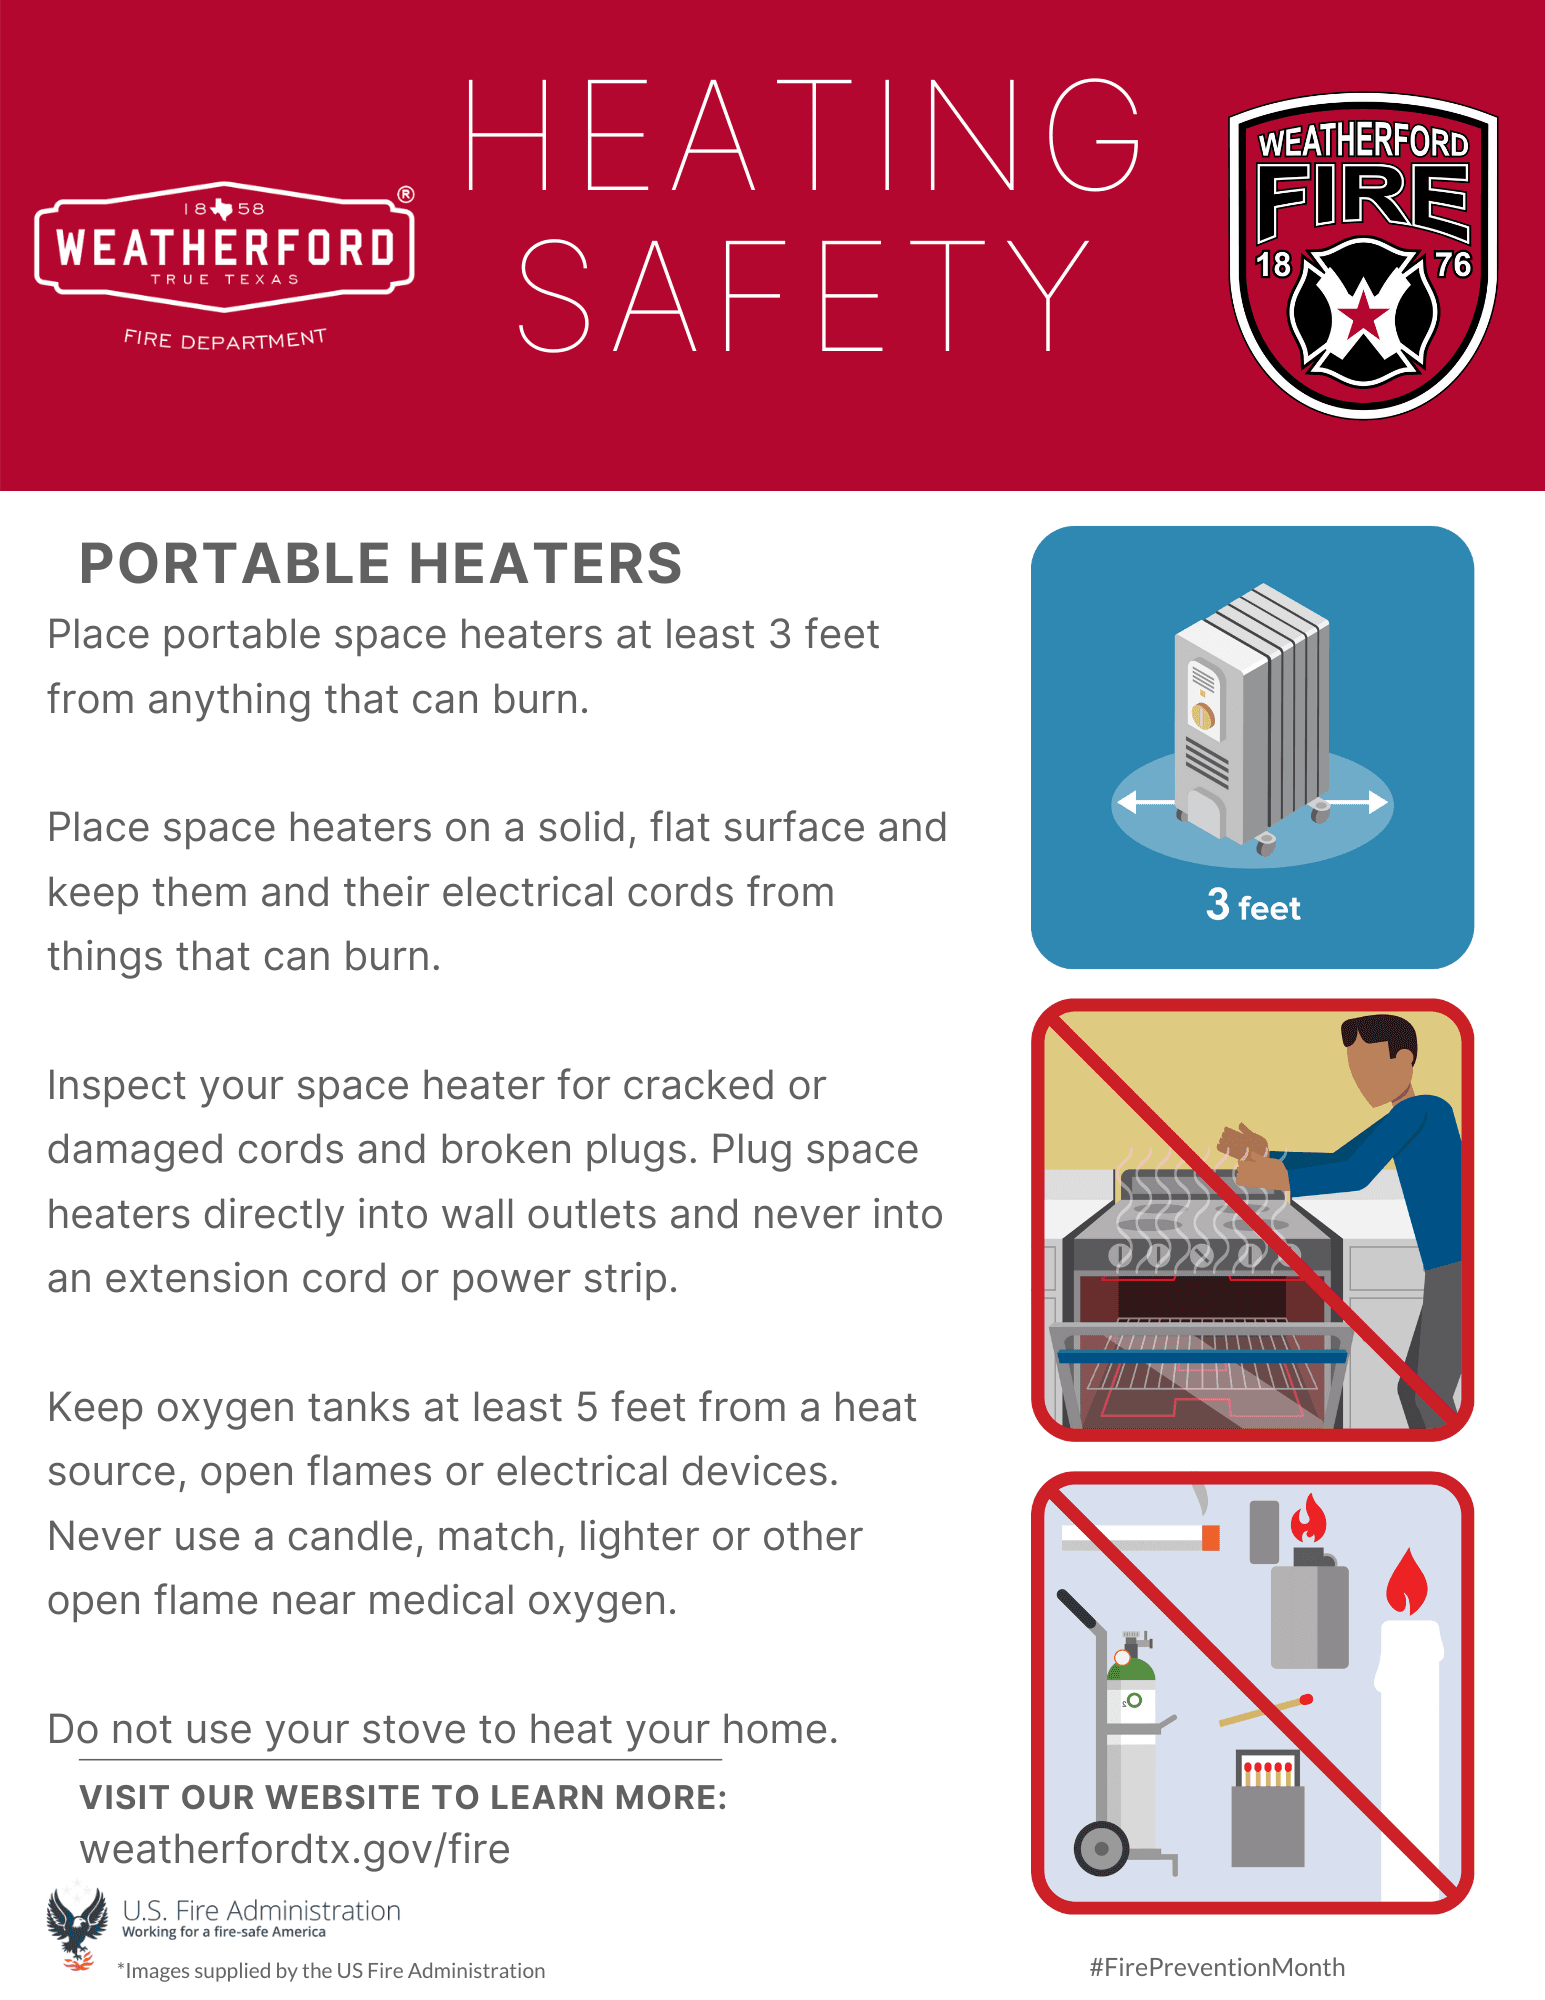 Heating Safety - Portable Heaters